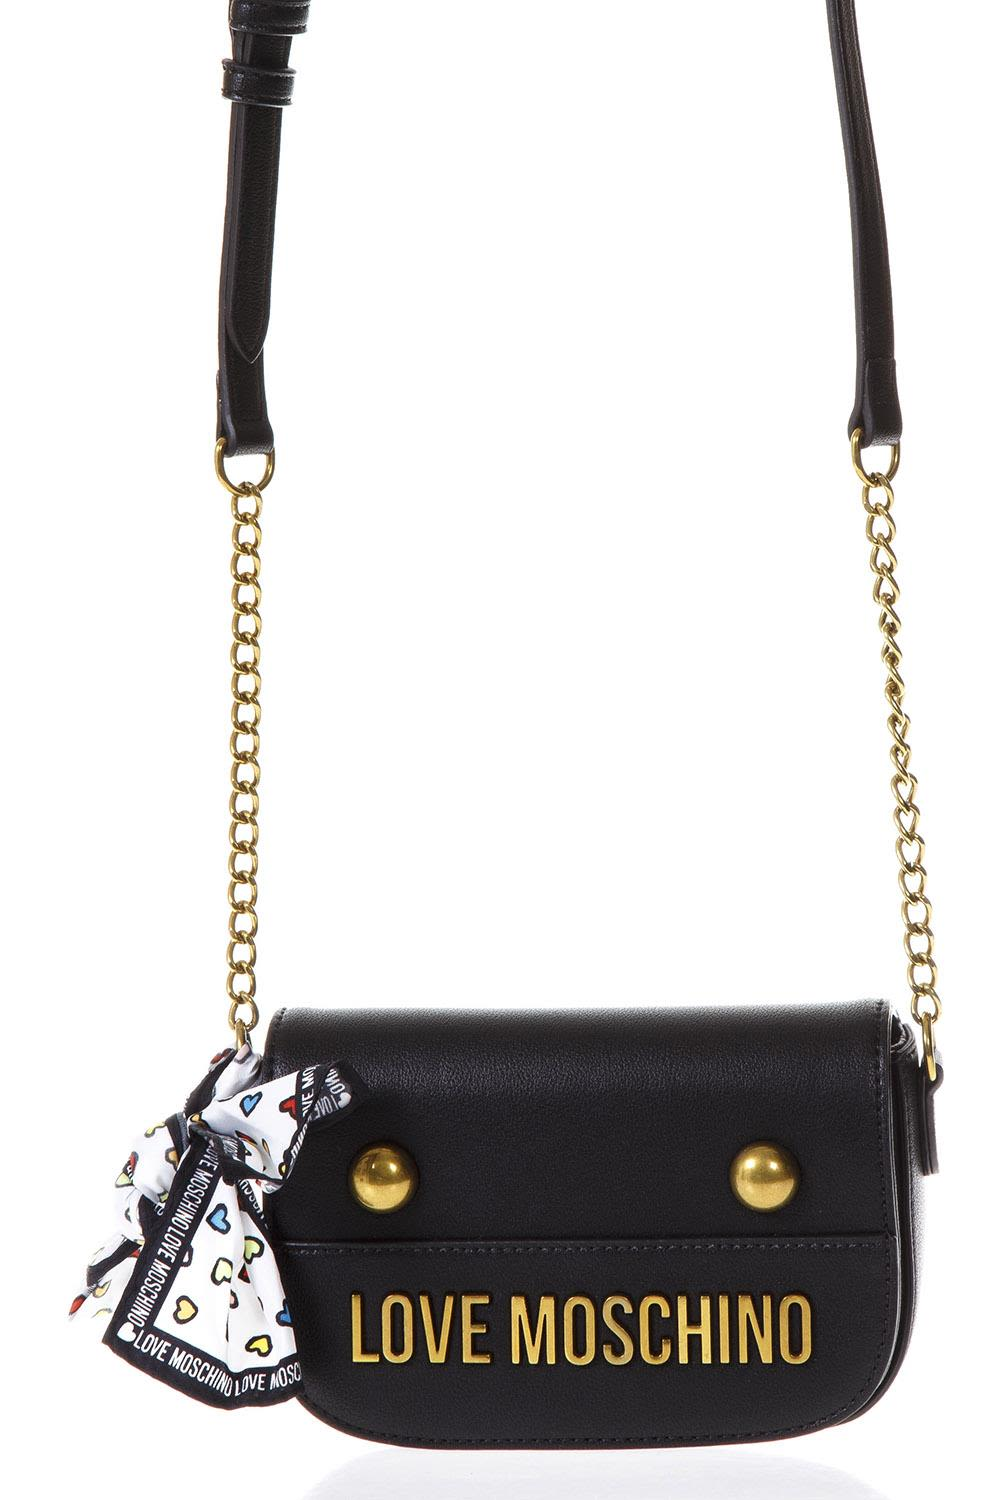 Love Moschino Black Faux Leather Cross-body Bag